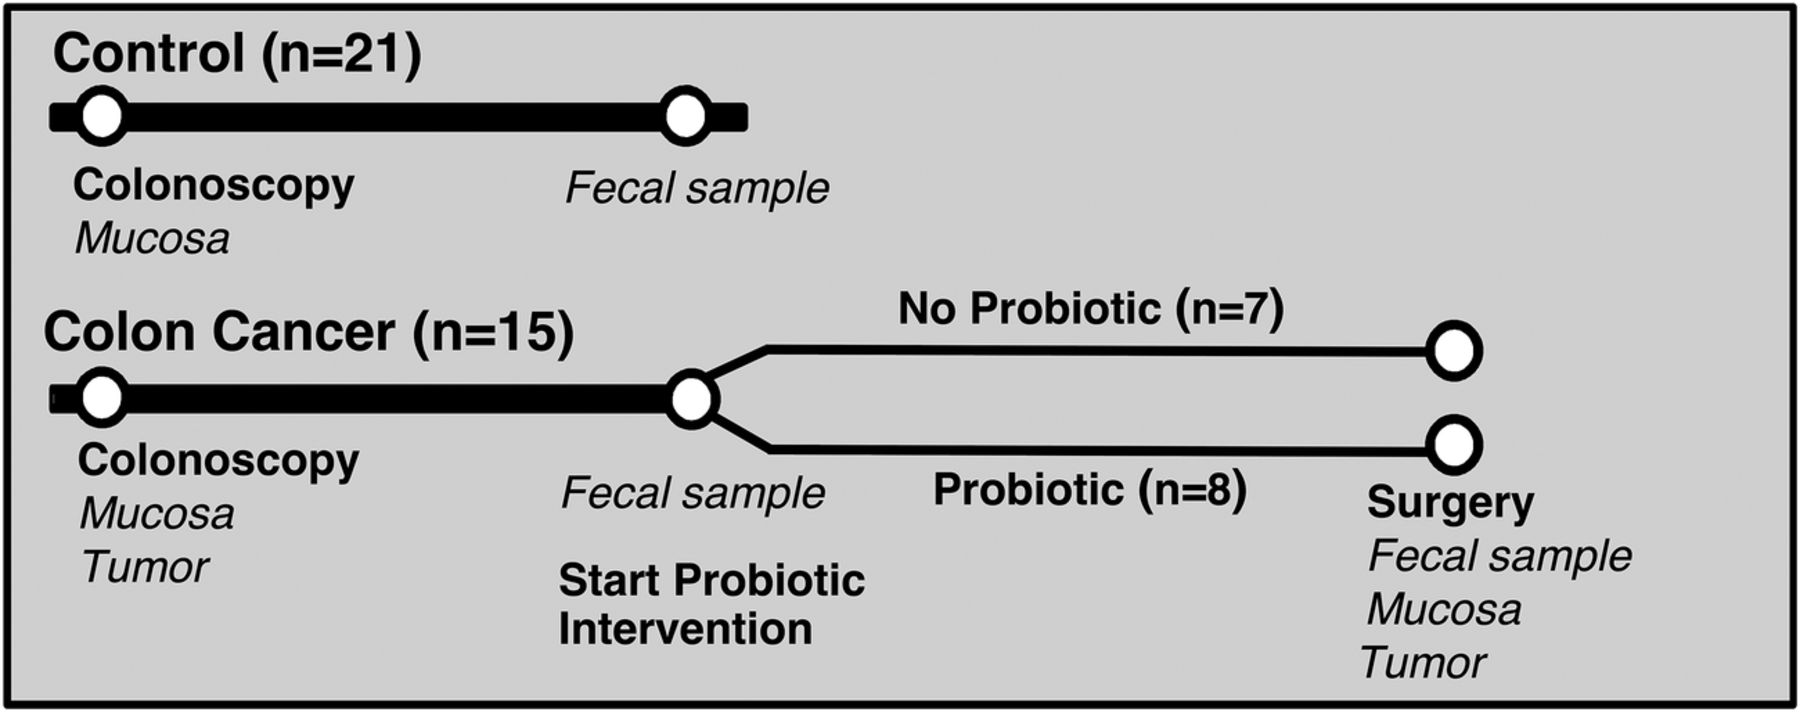 Intestinal Microbiota Is Altered In Patients With Colon Cancer And Modified By Probiotic Intervention Bmj Open Gastroenterology